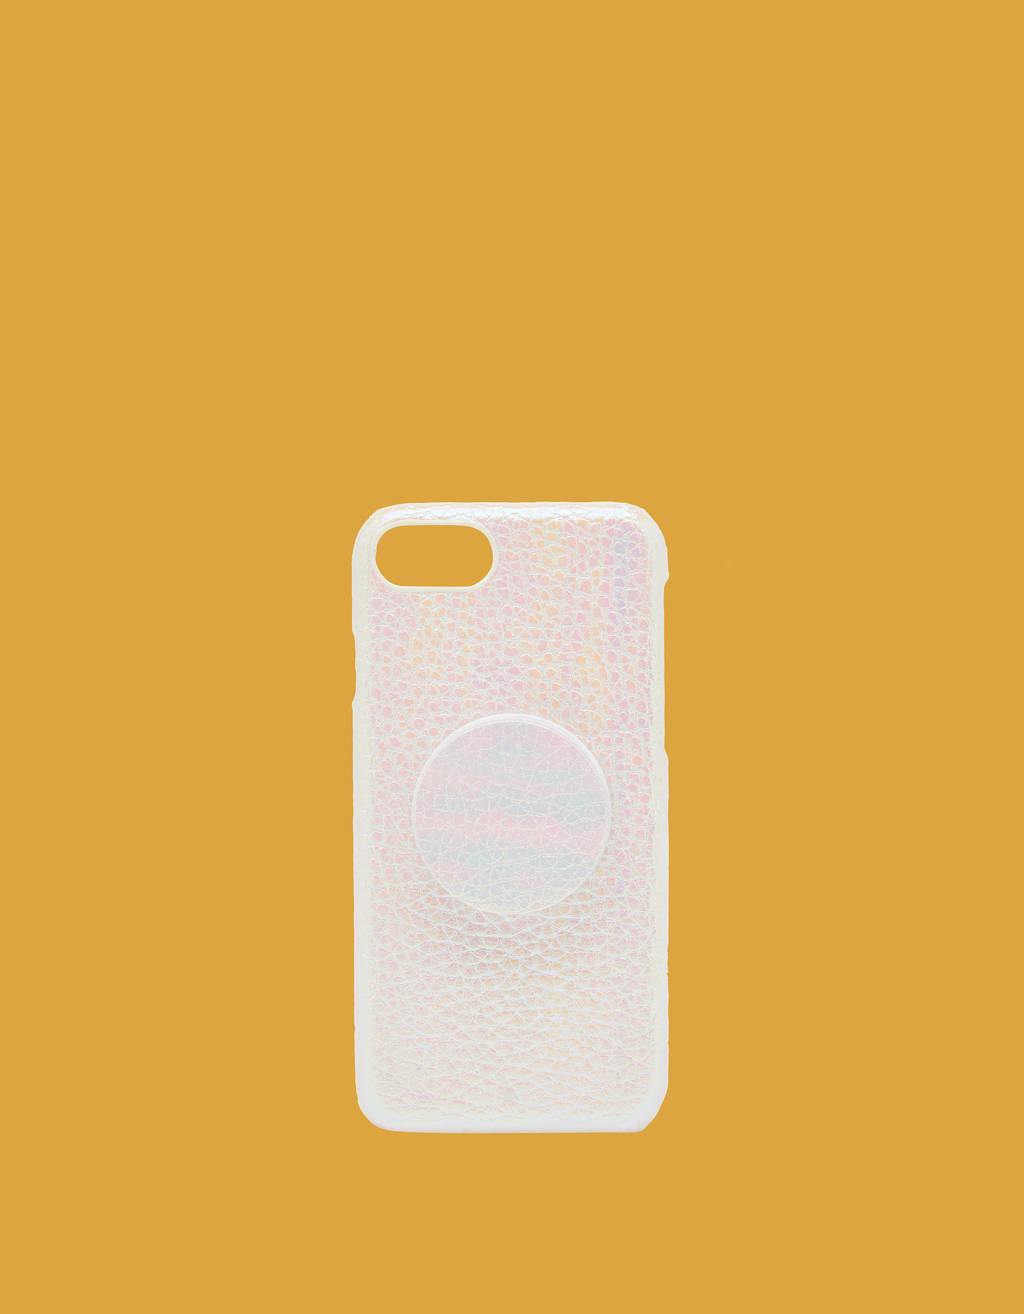 iPhone 6 / 7 / 8 case with adhesive ring